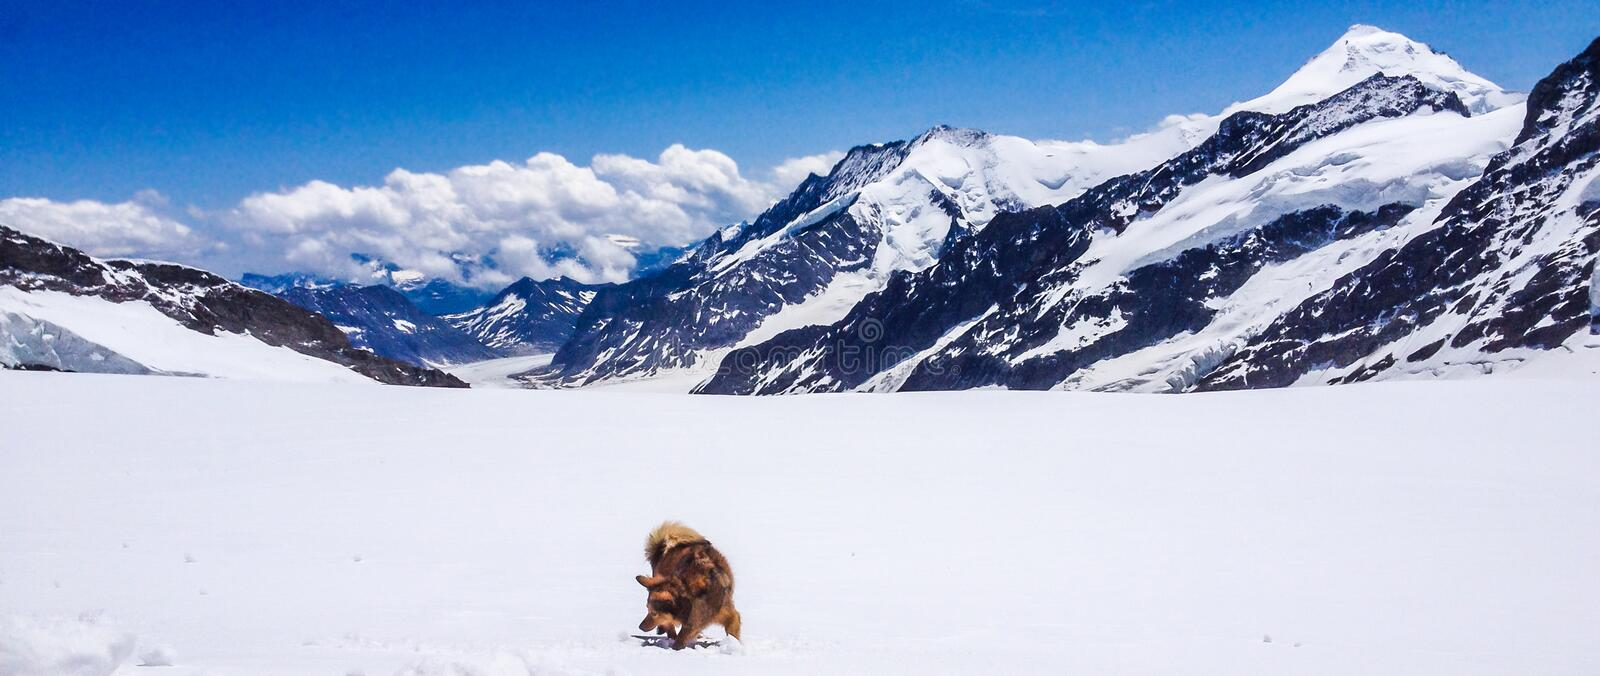 A dog playing with snow in front of Aletsch Glacier, Jungfrau Region, Bernese Oberland, Switzerland stock photo